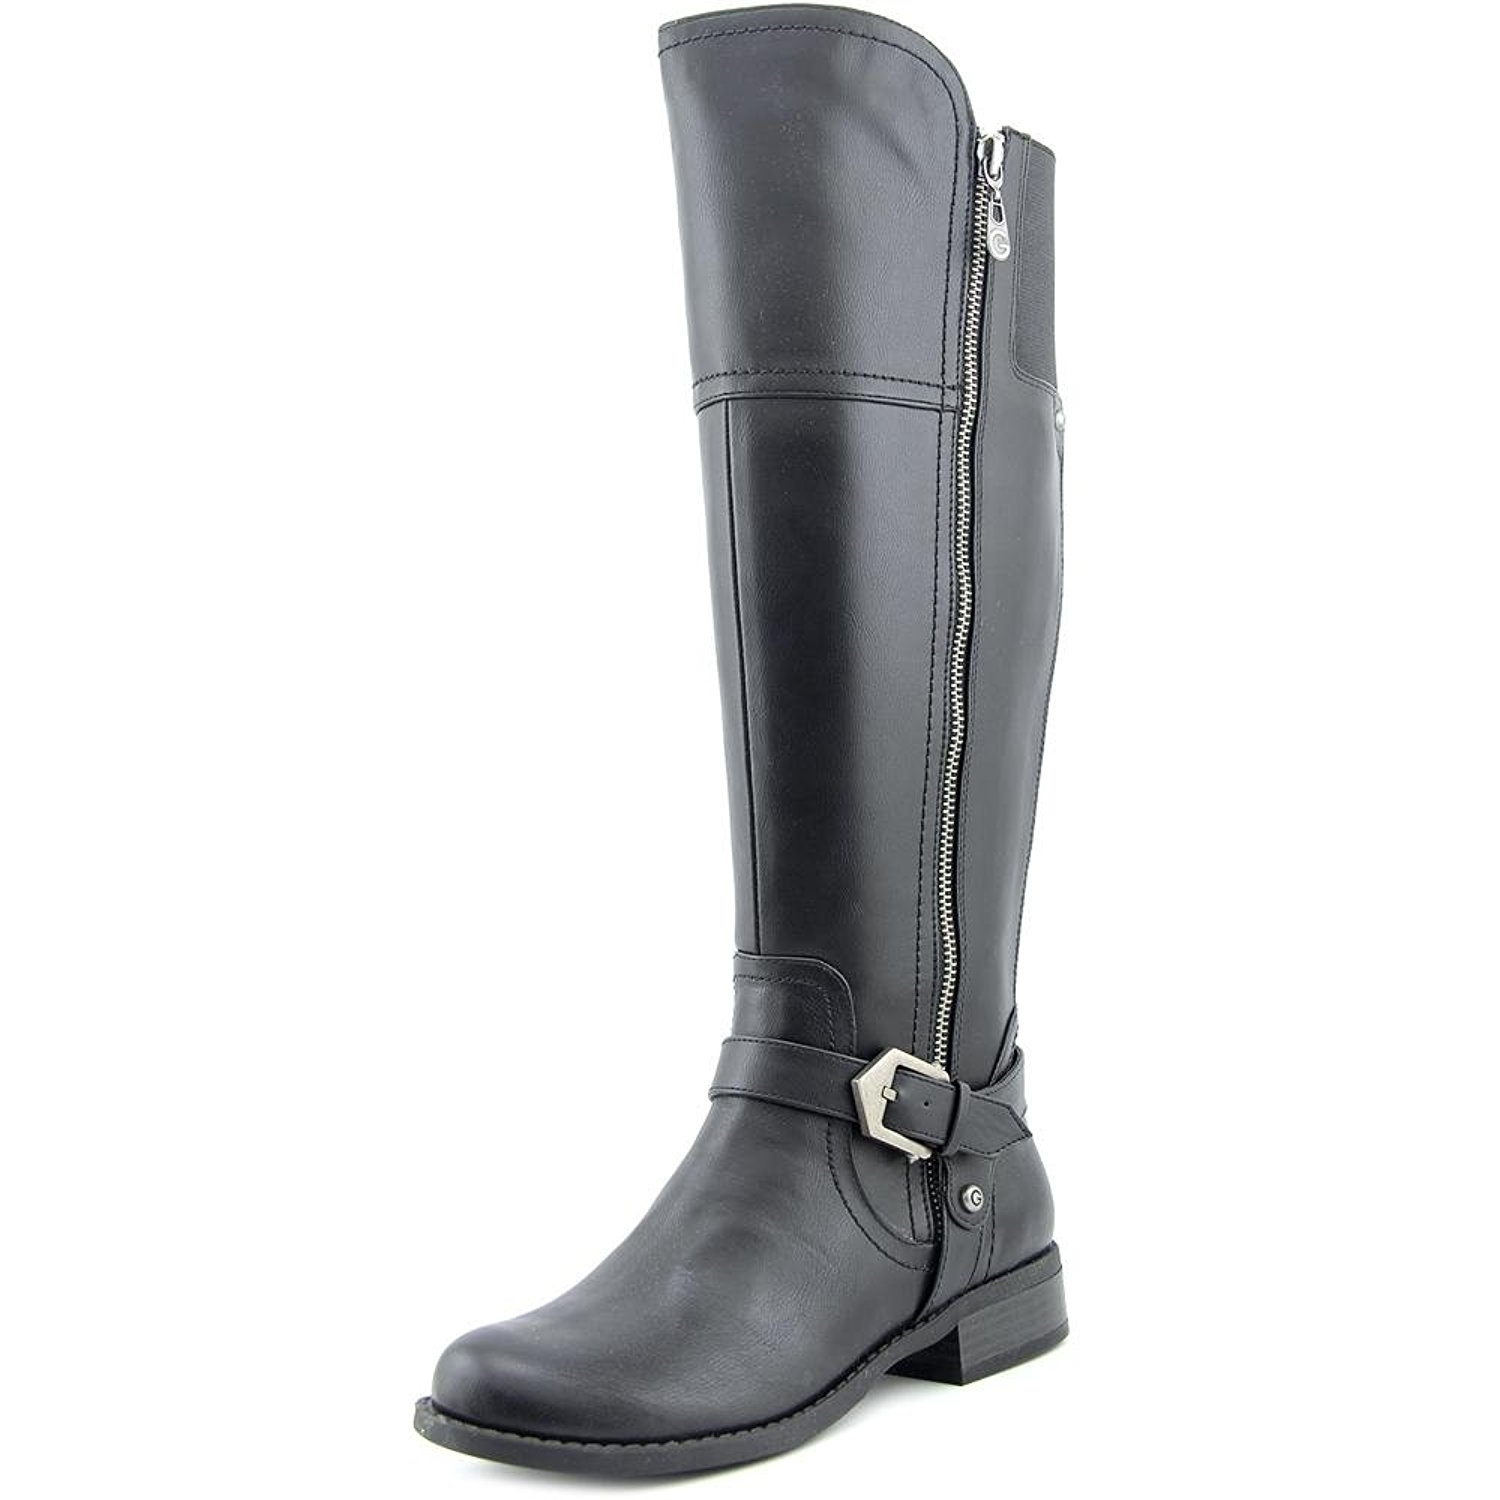 G By Guess Hailee Riding Boots nero 5.5 UK